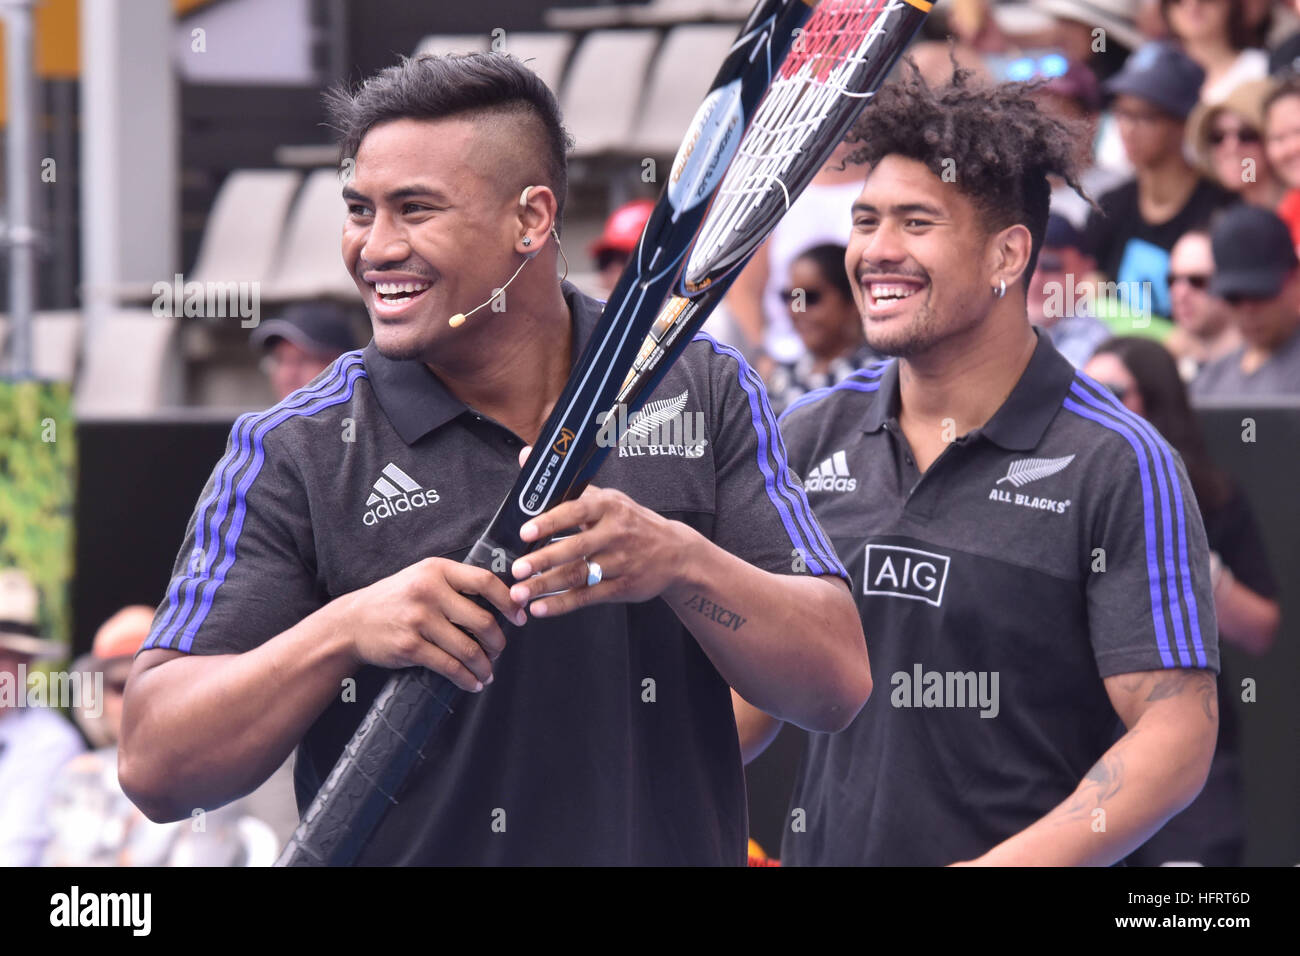 Auckland, New Zealand. 01st Jan, 2017. New Zealand All Blacks rugby stars Ardie Savea (R) and his brother Julian - Stock Image